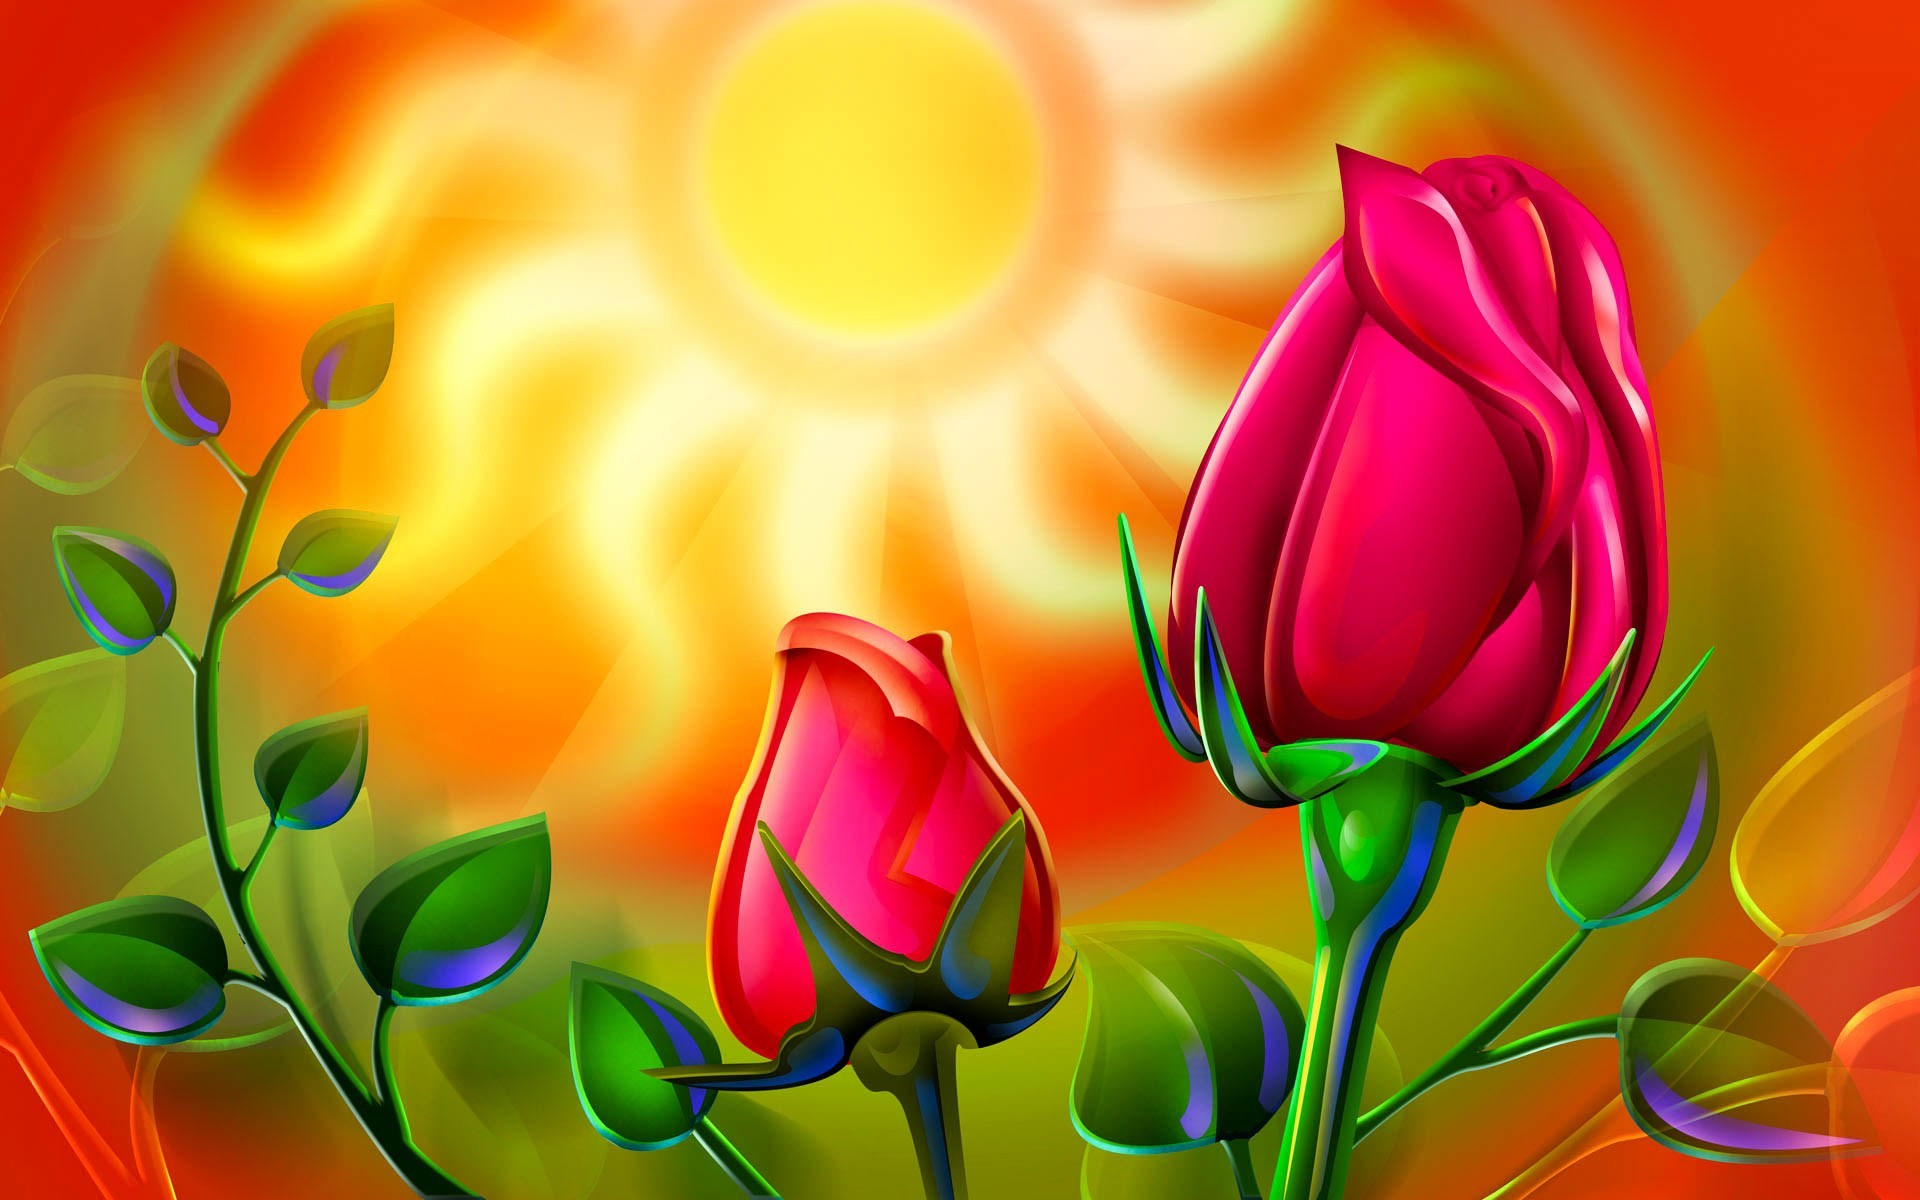 Pictures of beautiful flowers wallpapers 56 images 1920x1200 most beautiful flower hd wallpaper izmirmasajfo